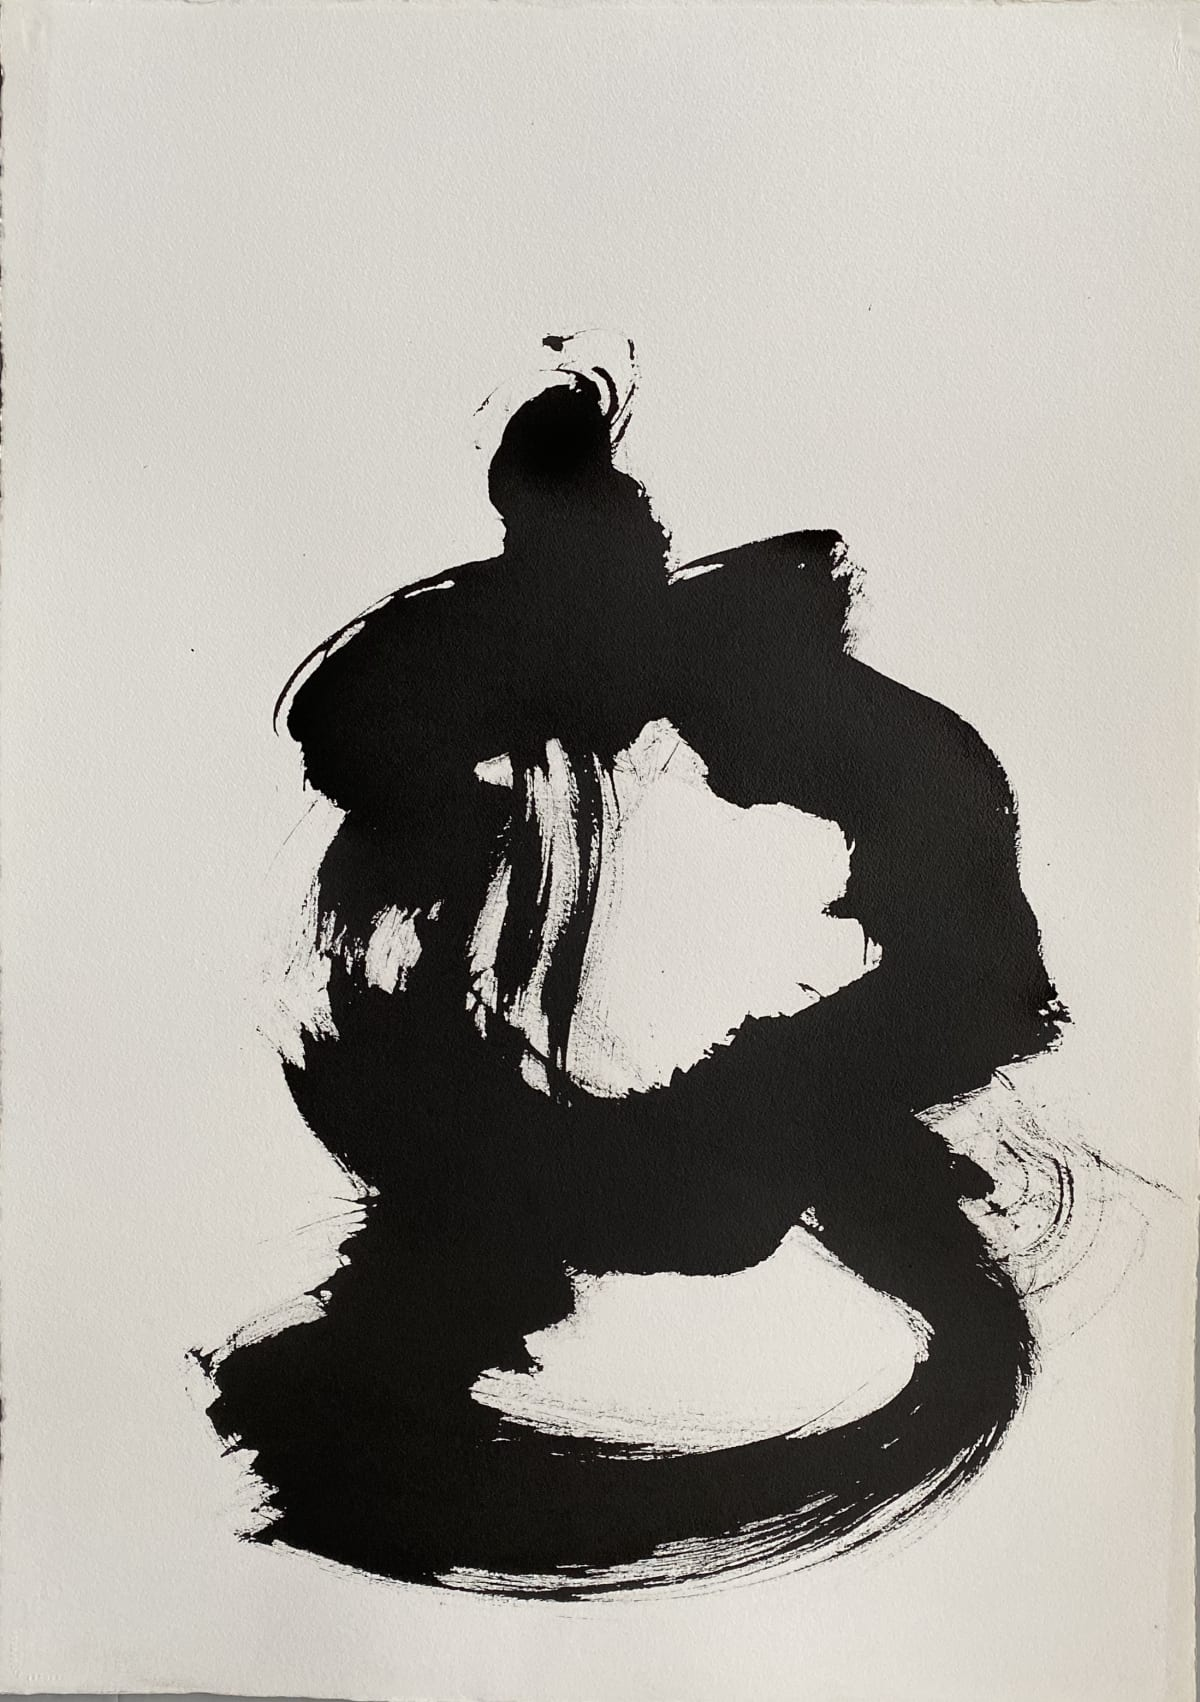 Terence Donovan Abstract 02 acrylic on paper 77 x 110cm